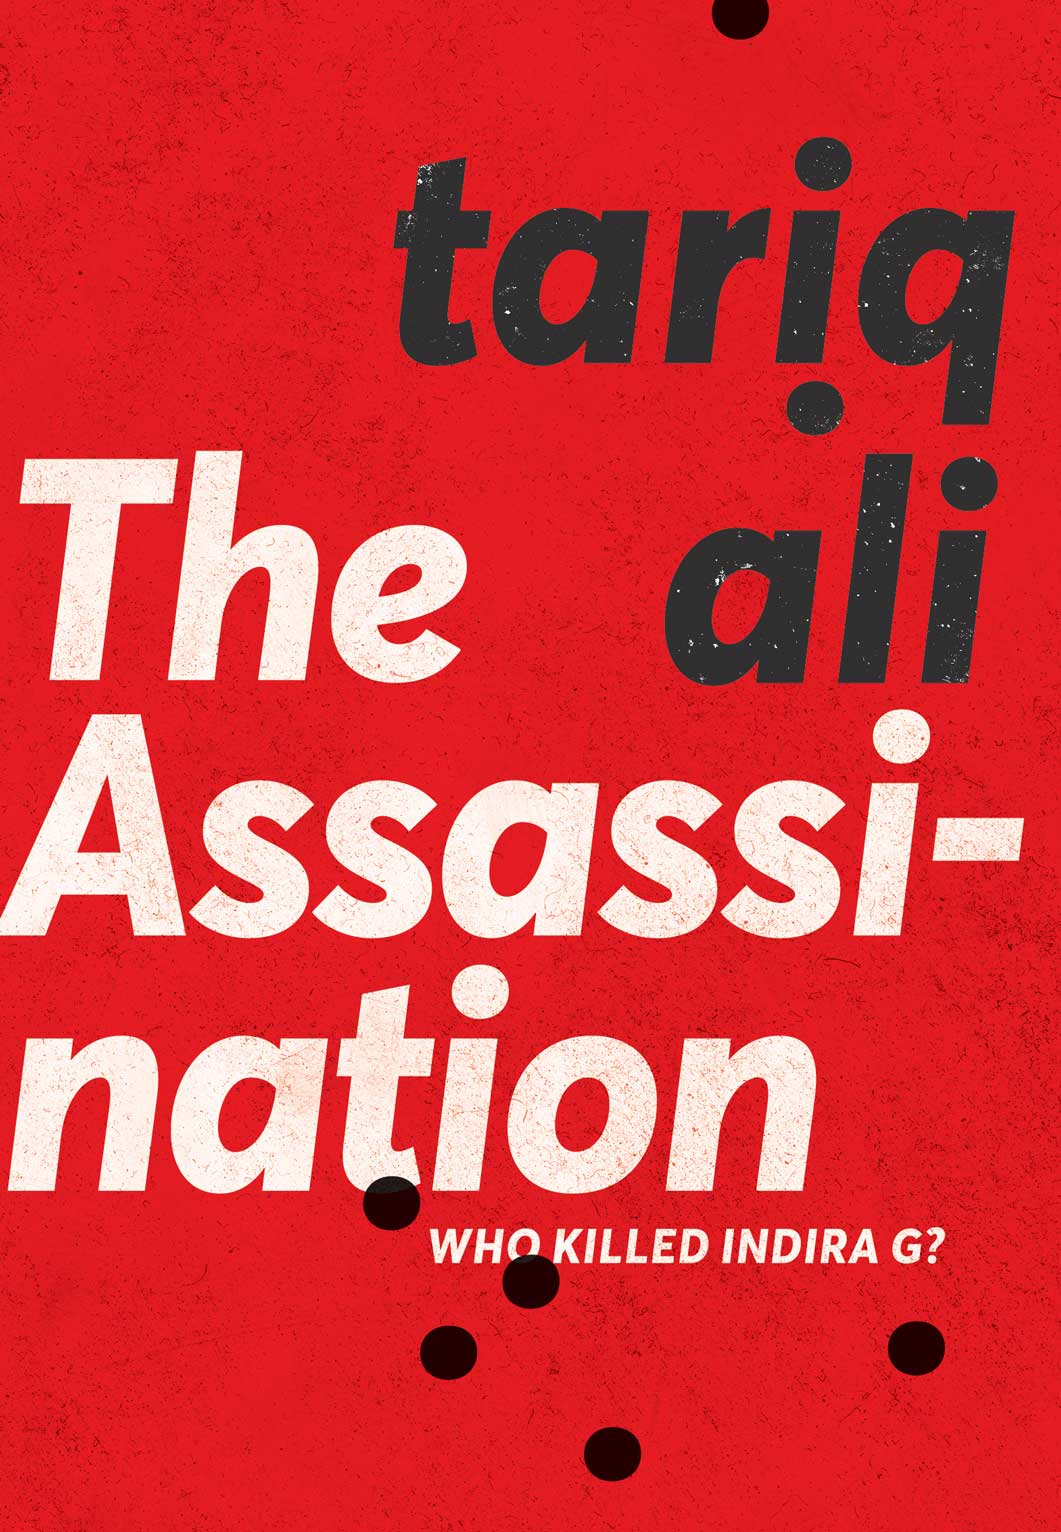 The Assasination : Who Killed Indira G? by Tariq Ali |  Seagull Books